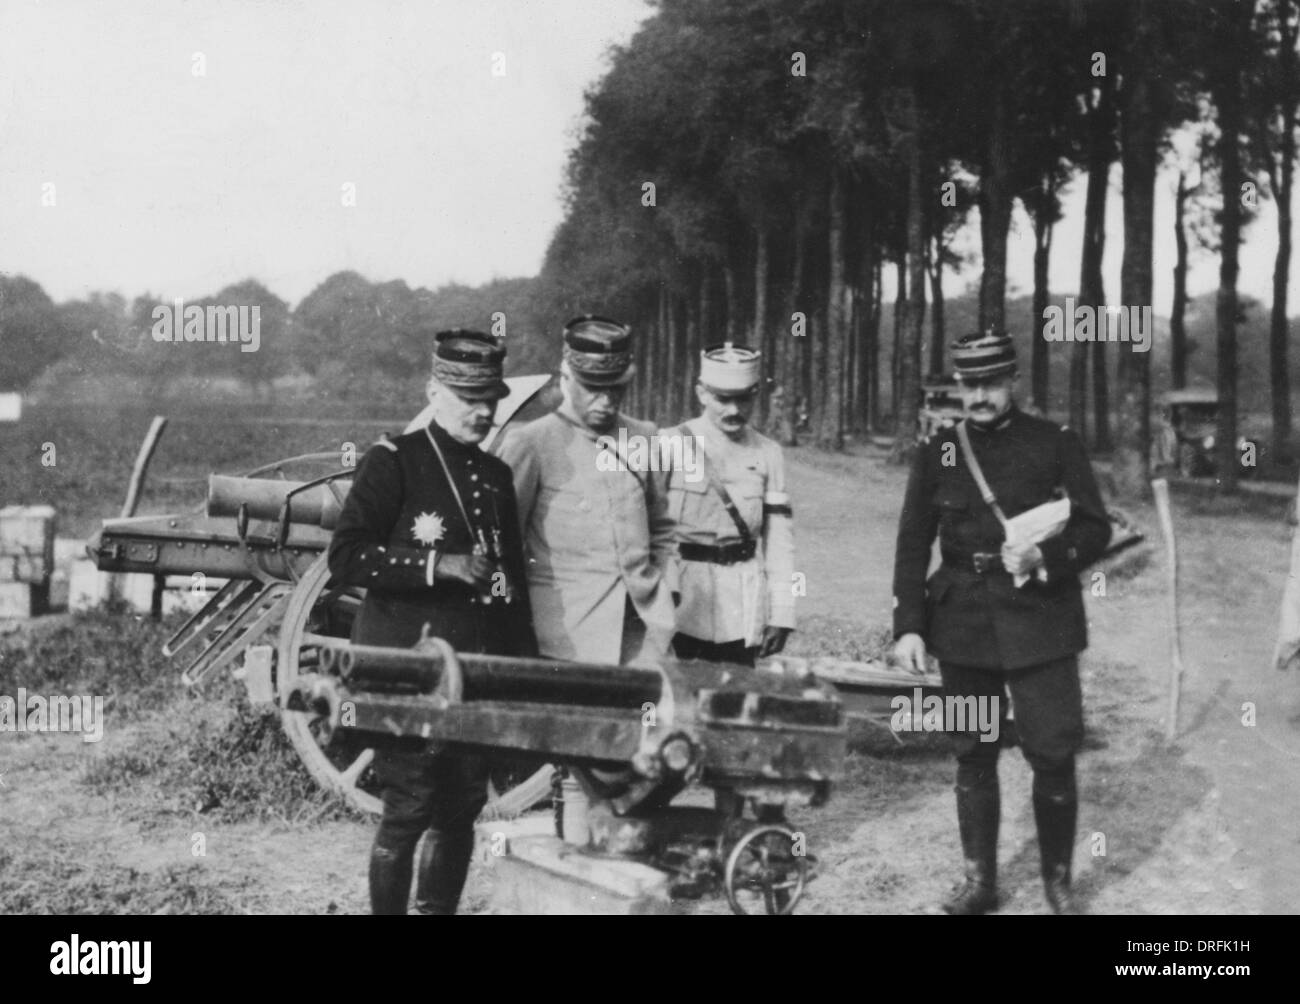 Generals Foch and Fayolle with captured German cannon - Stock Image